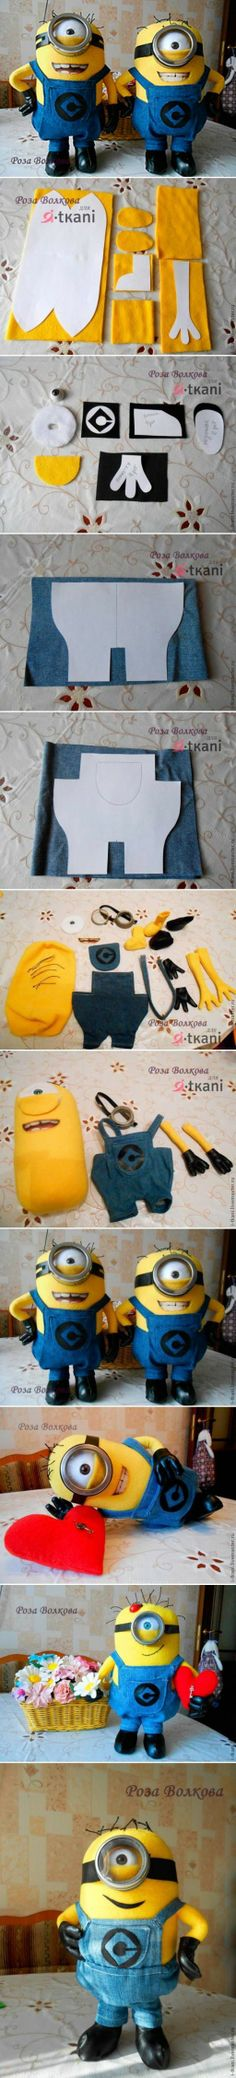 How to make Minion toy Doll step by step DIY tutorial instructions 512x4509 How to make Minion toy Doll step by step DIY tutorial instructio...